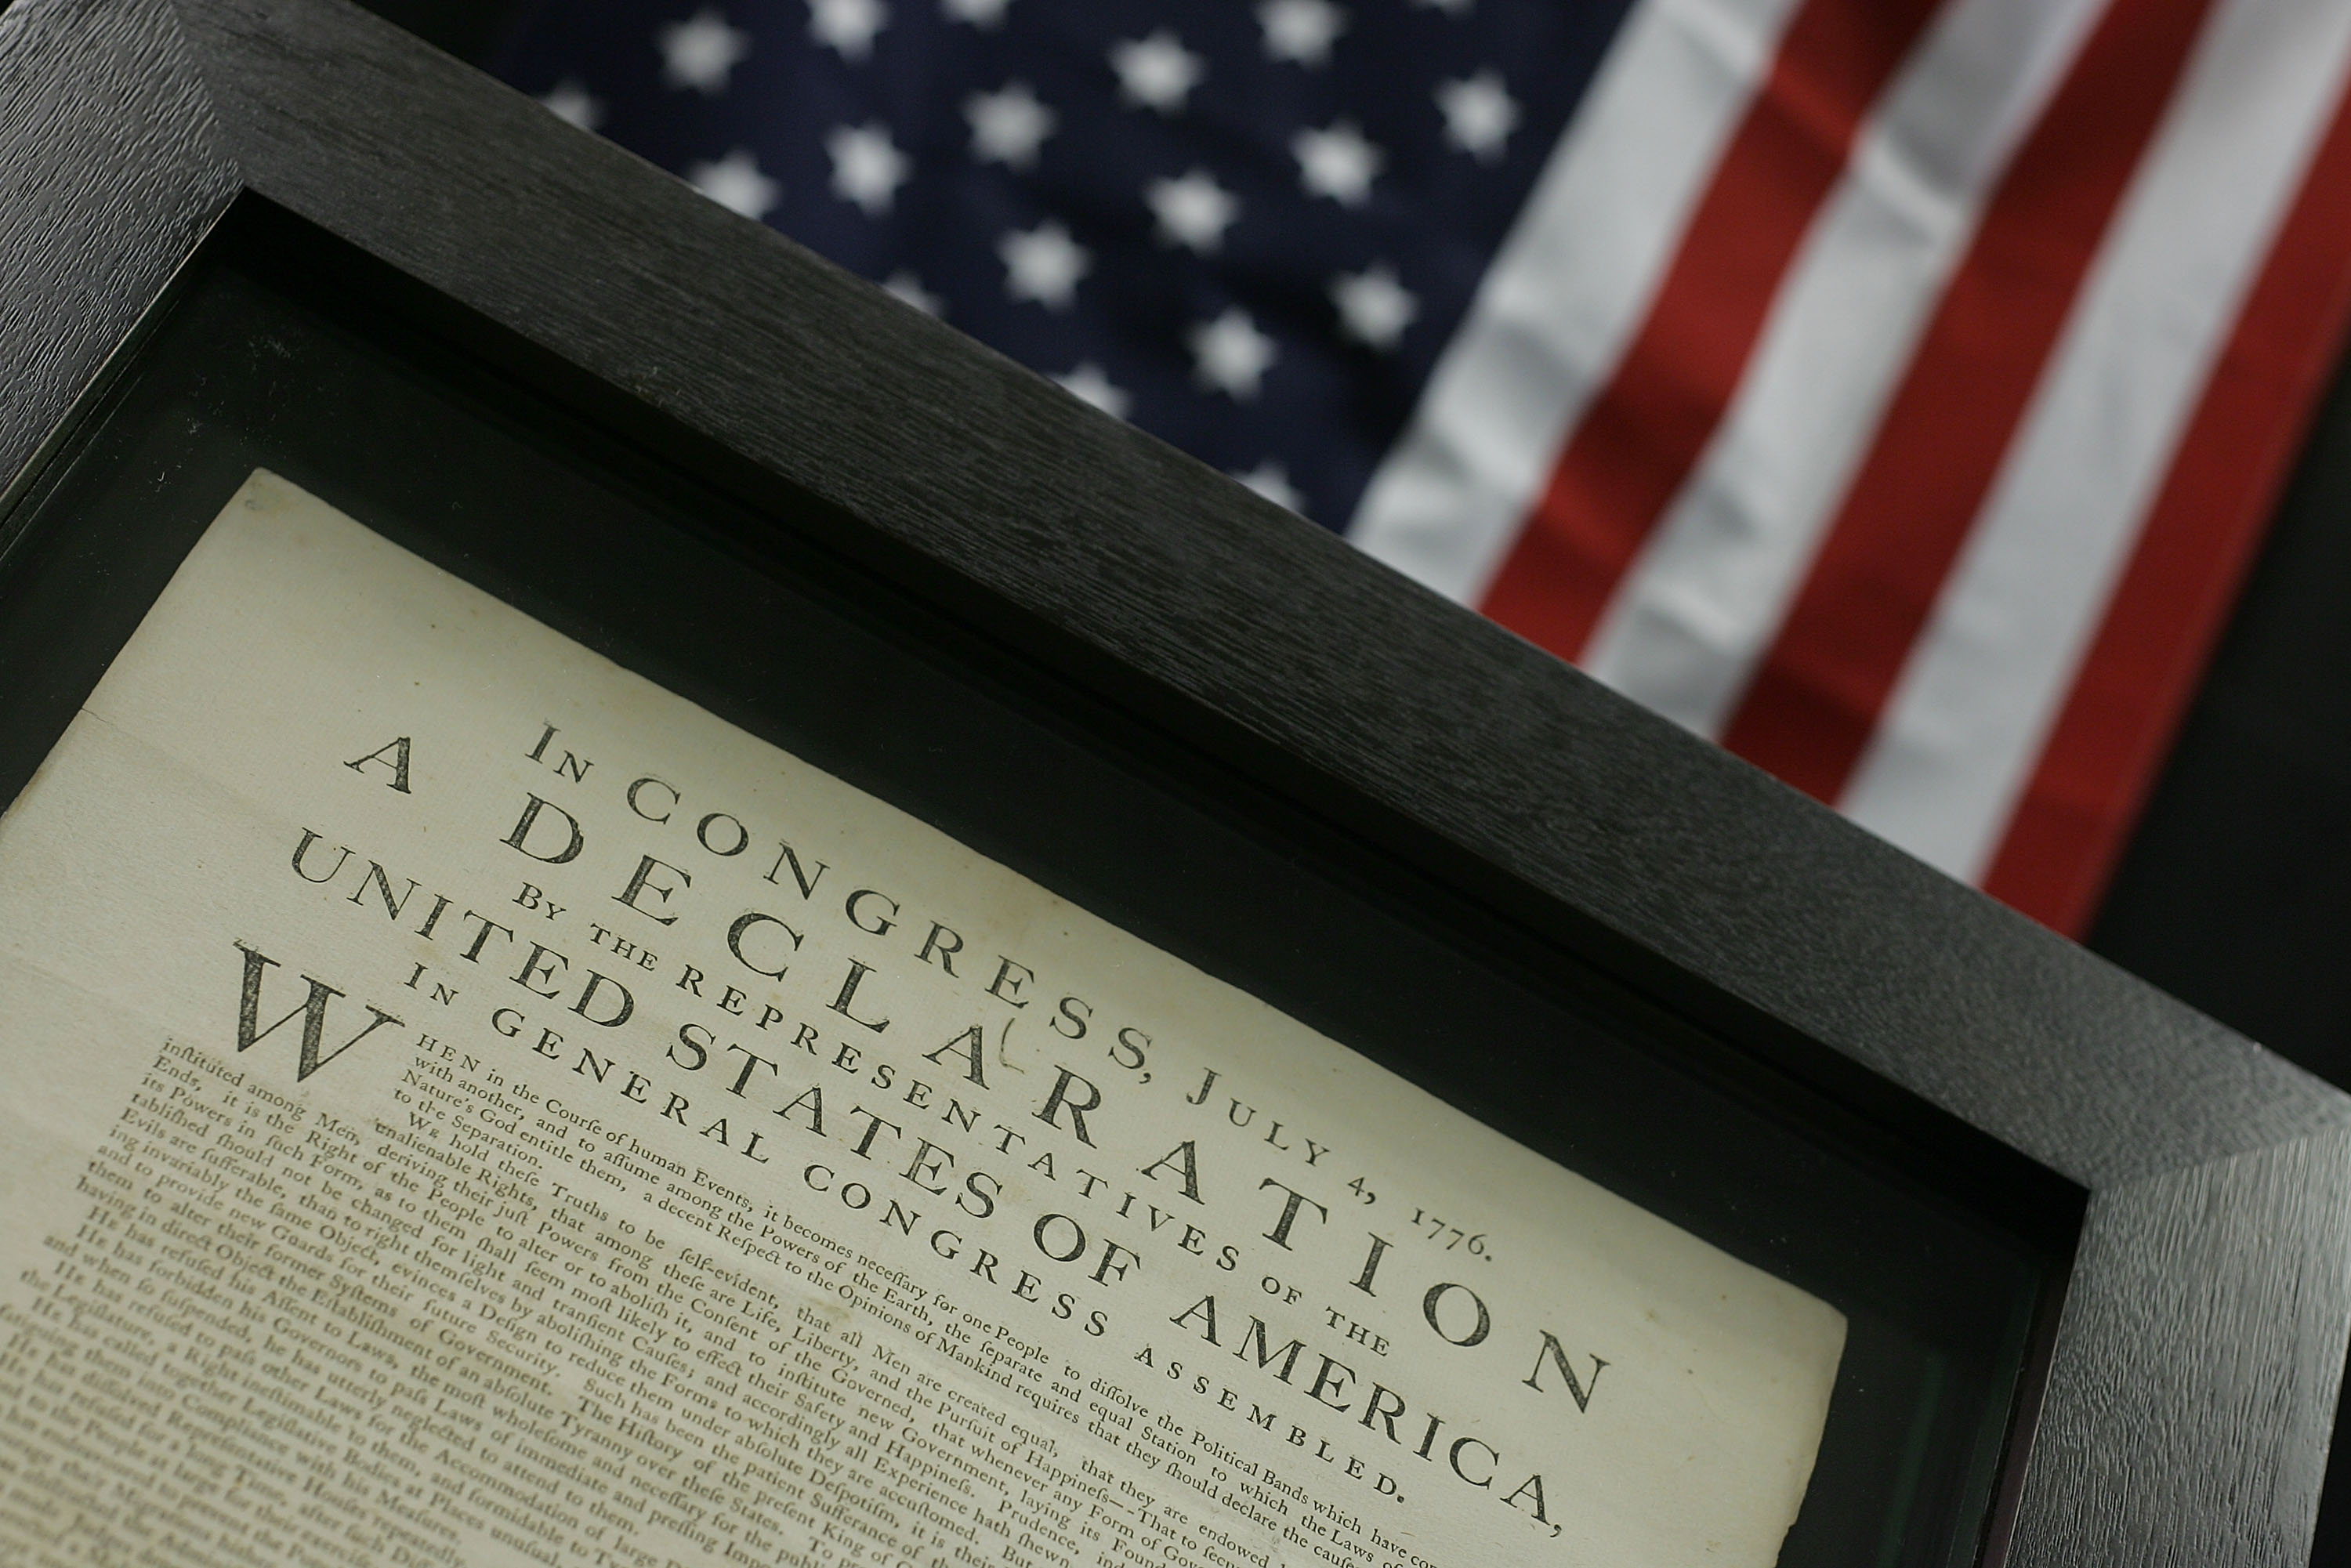 A framed image of the Declaration of Independence.